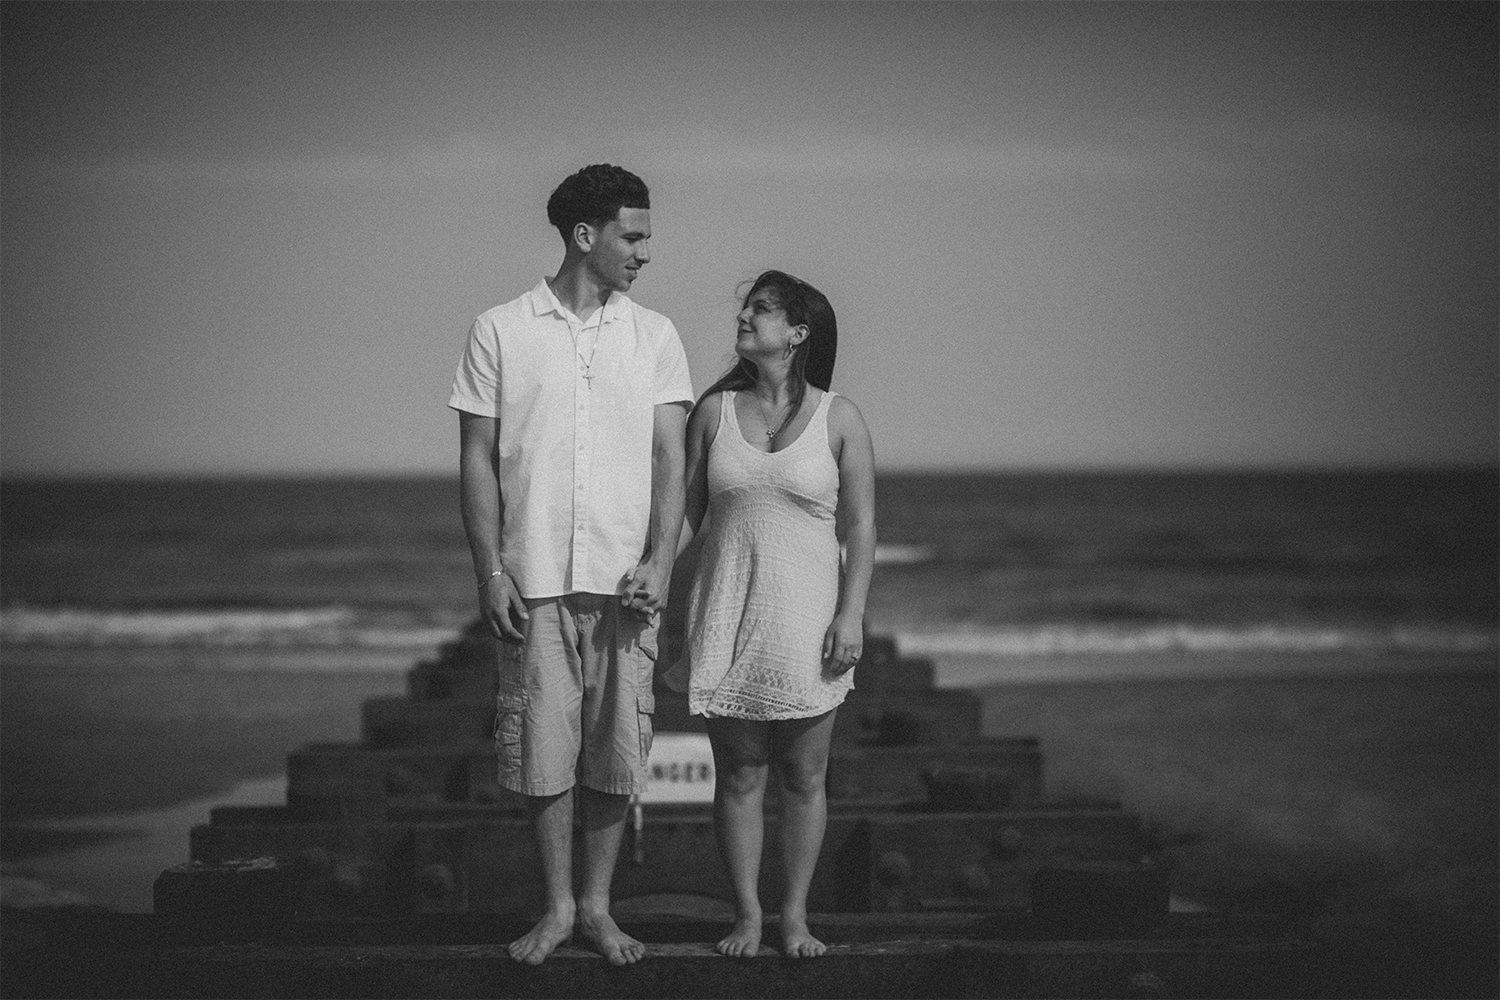 New_Jersey_Wedding_Photography_Engagement_Session_Beach_Session_Couple_010.jpg